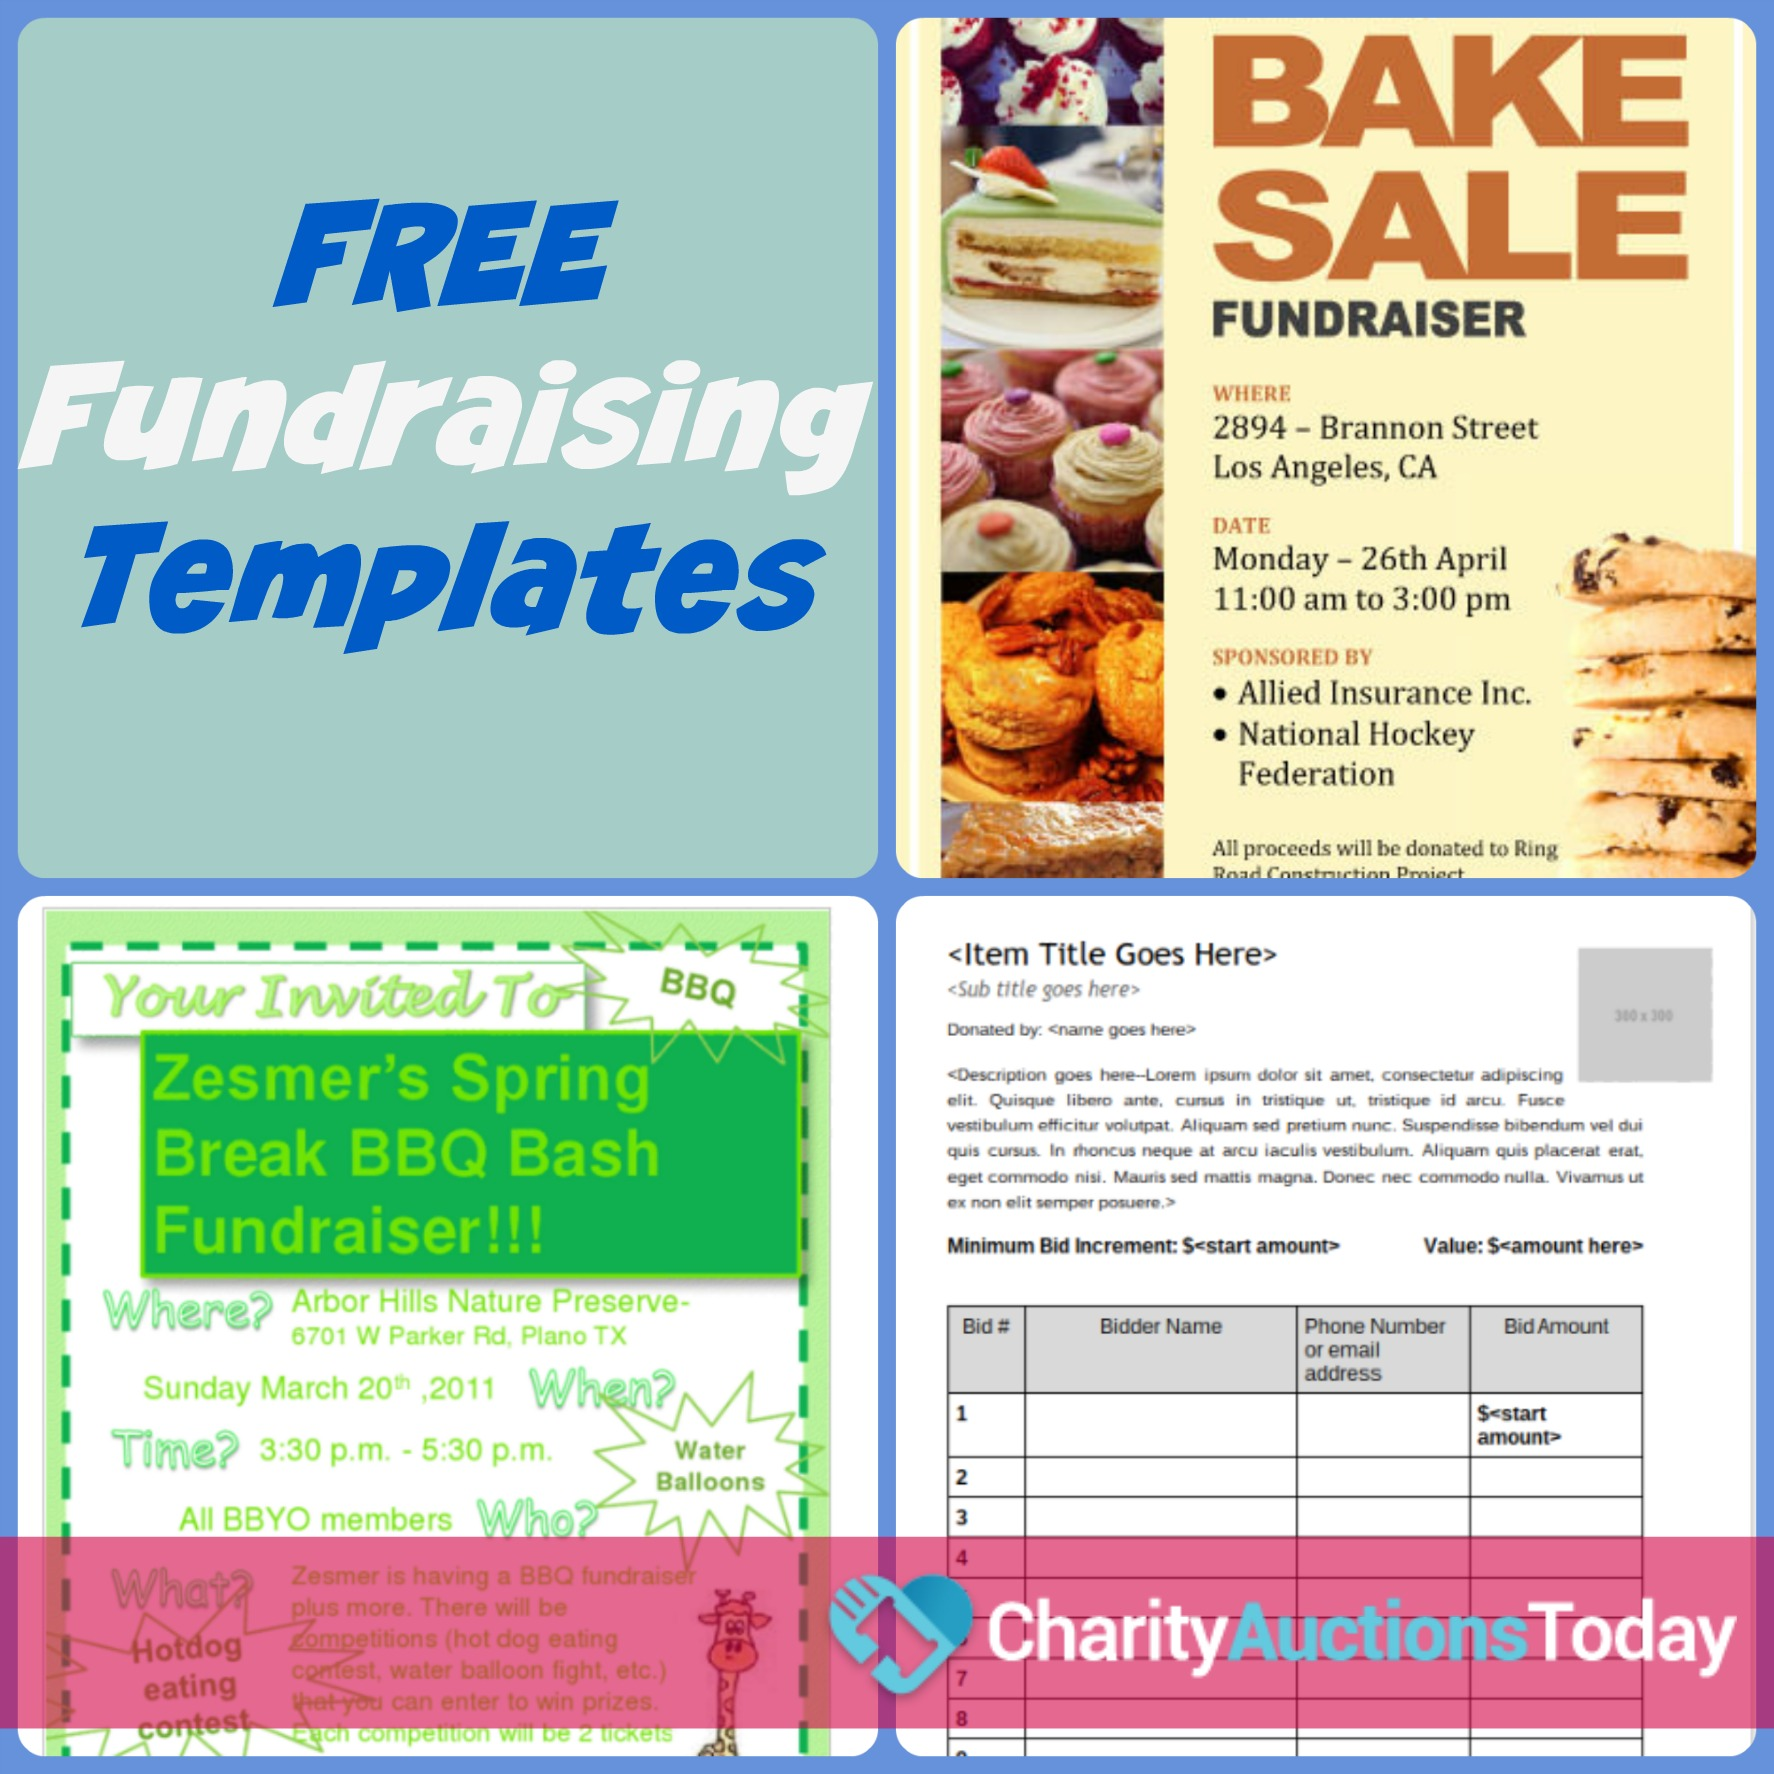 Free Fundraiser Flyer Charity Auctions Today